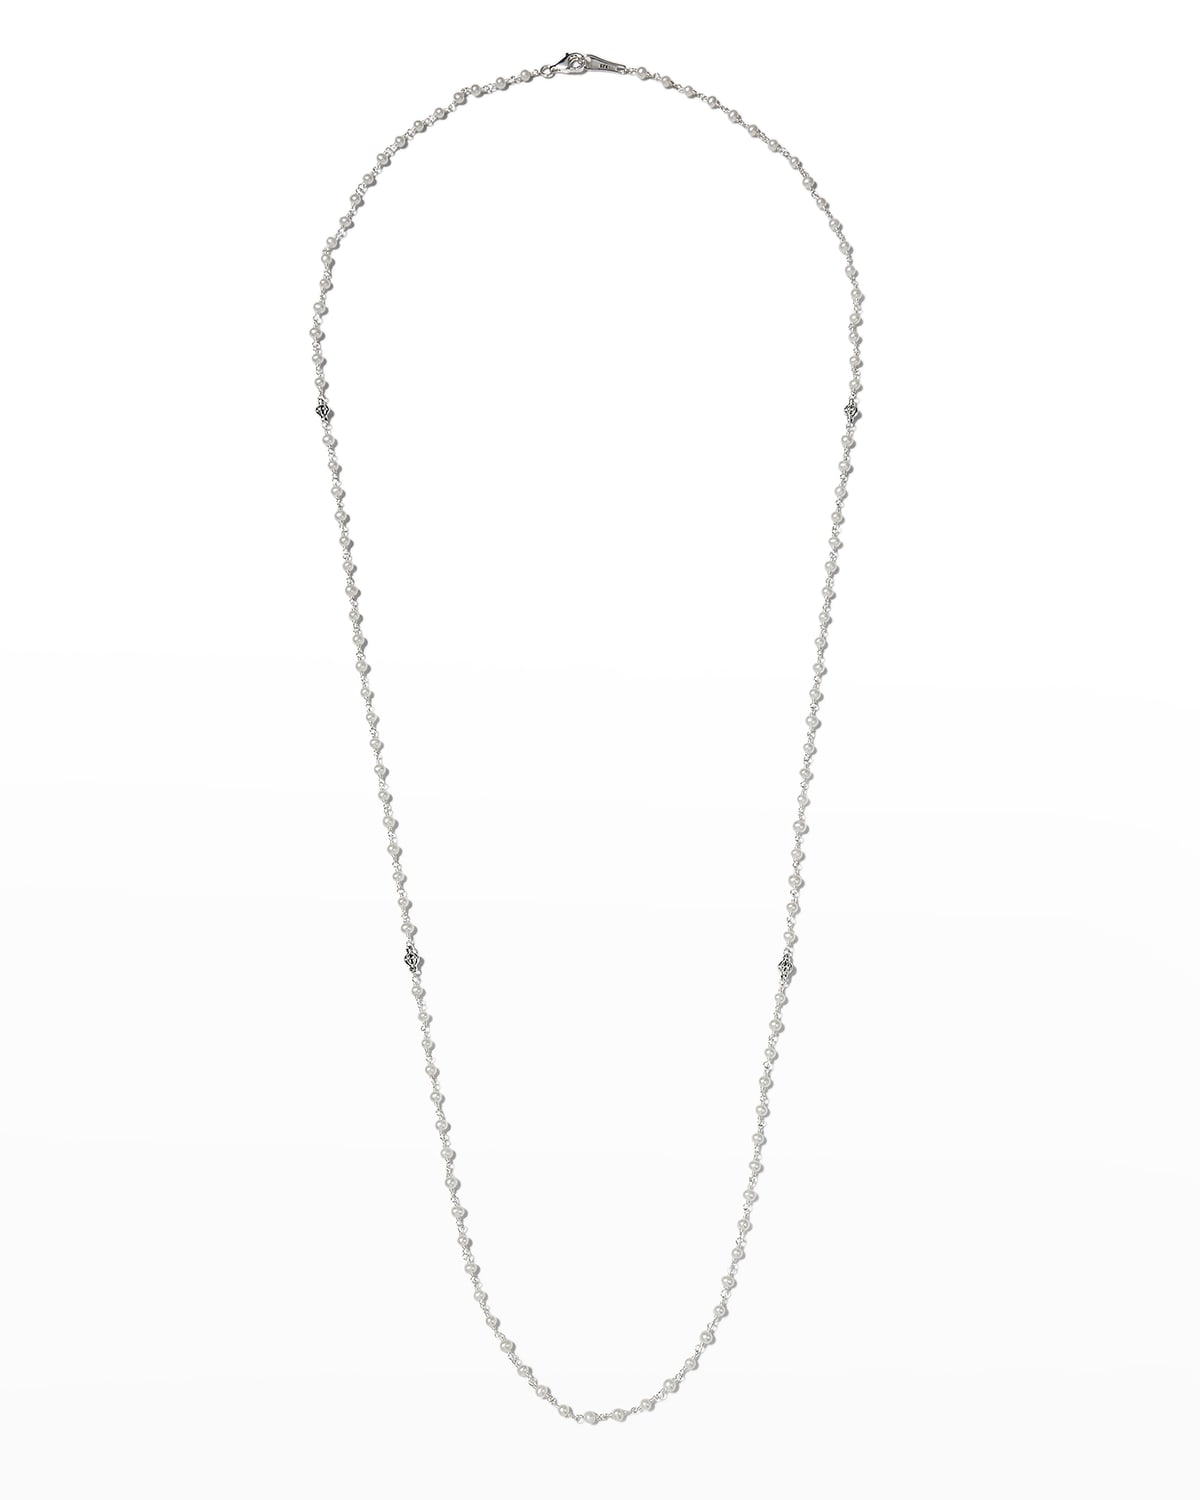 Luna Pearl Necklace with Sterling Silver